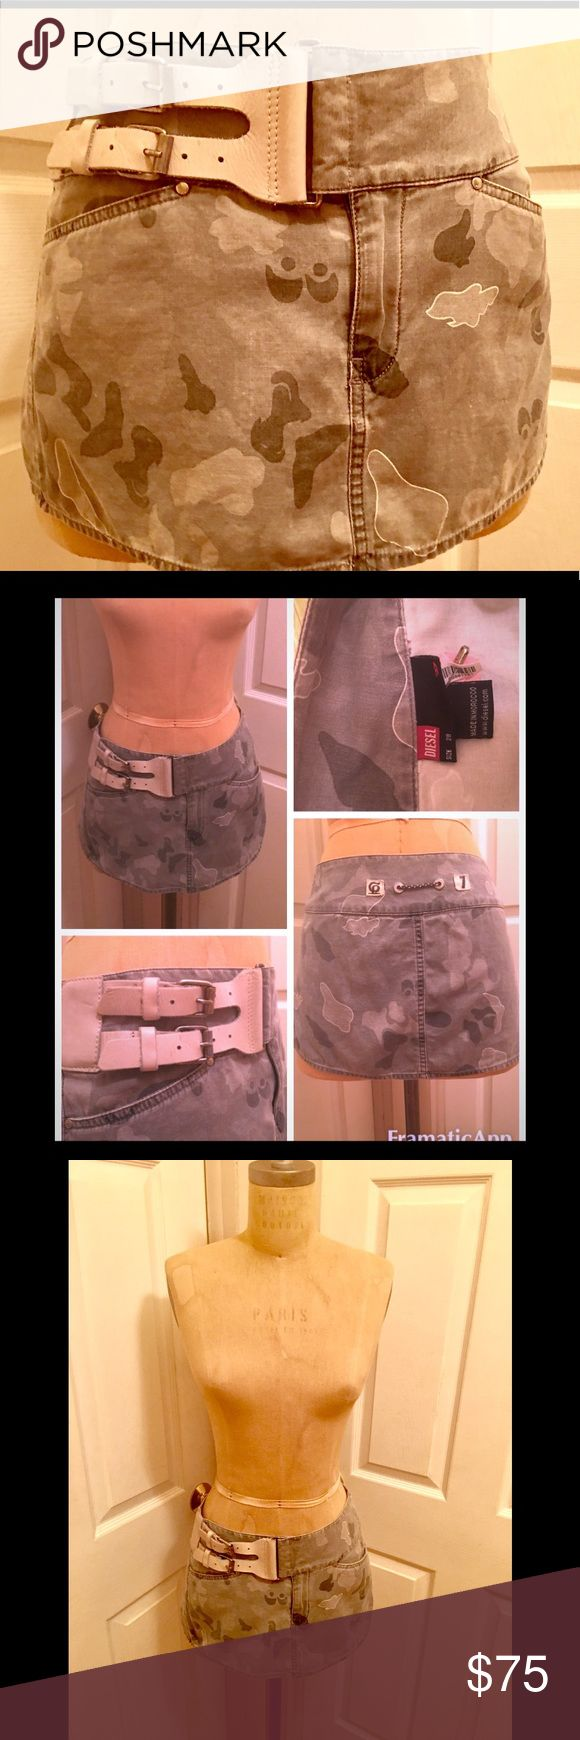 Vintage perfect condition camo  w/leather accents Worn handful of times. Expertly cleaned. No damages. Great condition. Camouflage print in different shades of grey mini with cute back detail ( pictured). Skirt has zipper opening which is green for extra quite unique quality, double snap closure at top. Also features built in genuine leather belt. Belt is cream/ivory colored soft leather with silver belt double closure. See pics for detail. Great with knee boot and sweater or sexy pump and…